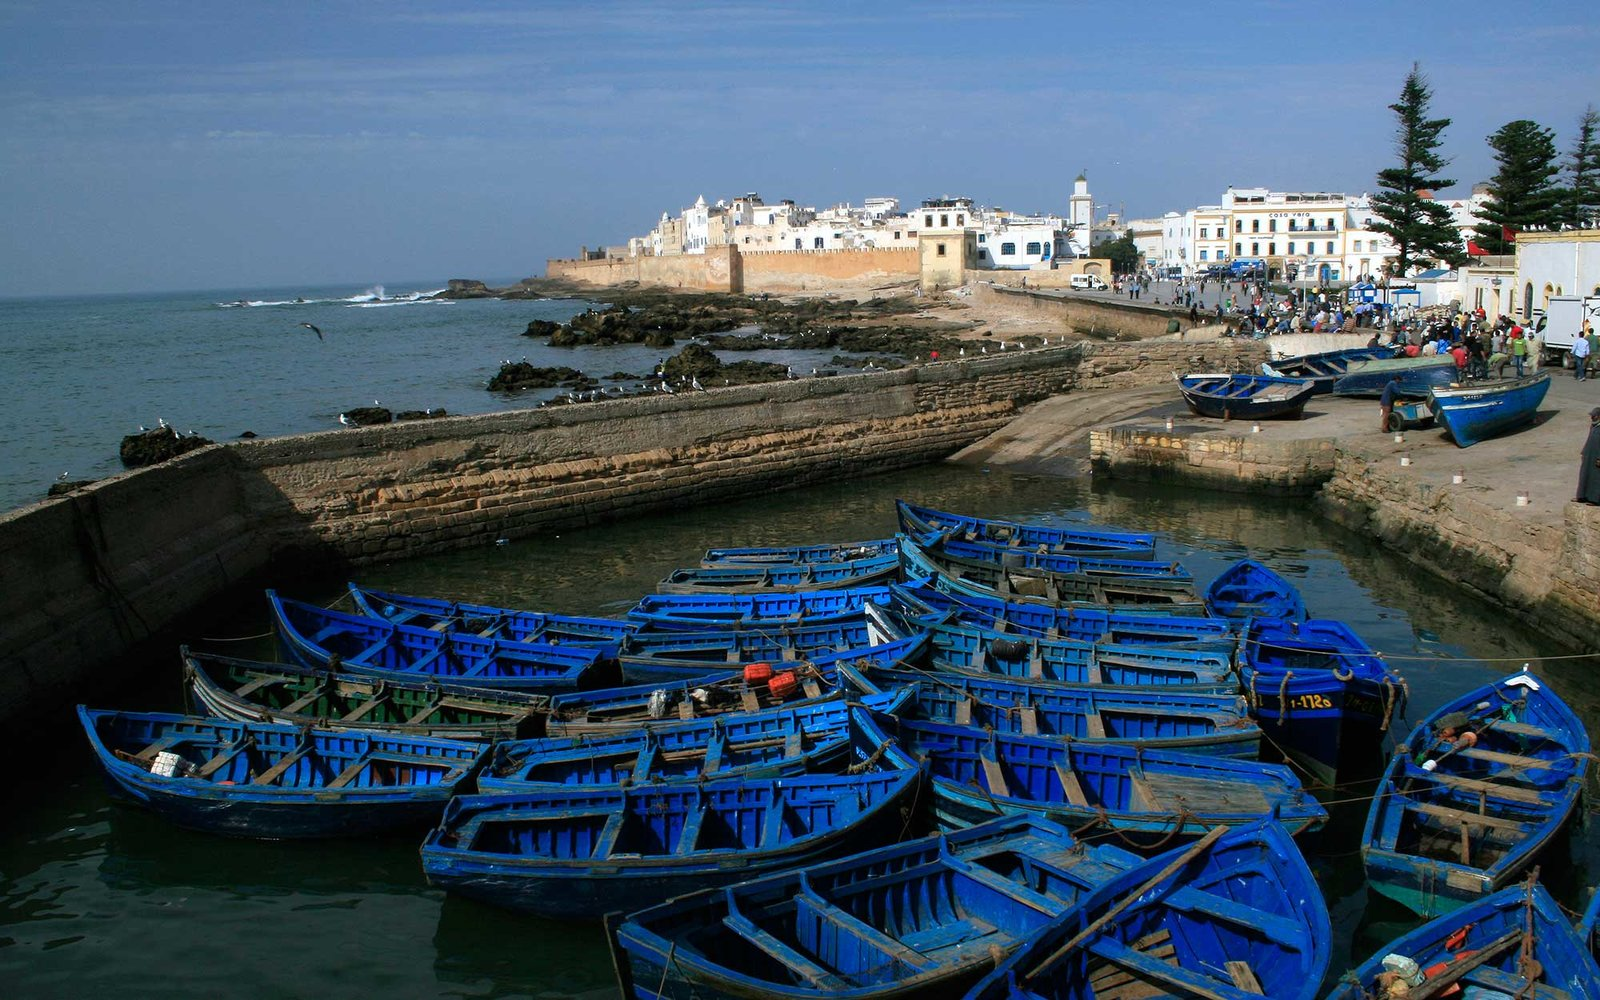 10th September 2009; Fishing boats in Essaouira, Morocco. Picture by David Pillinger.